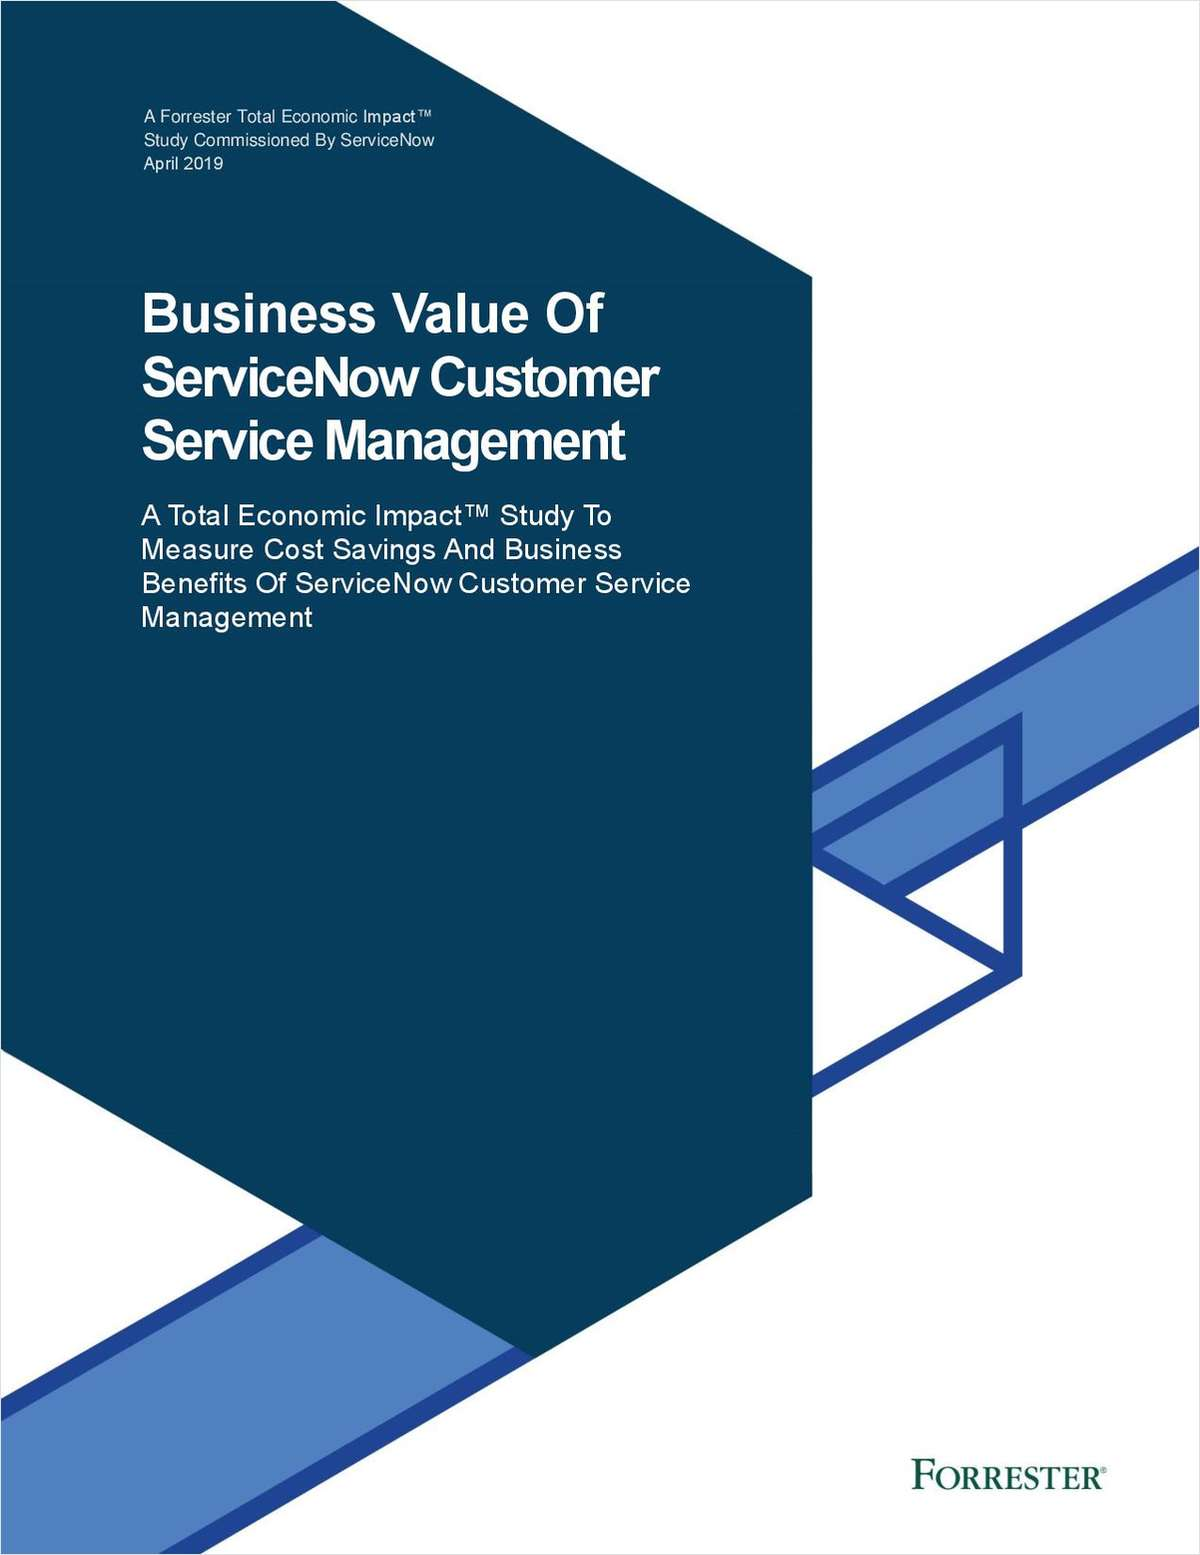 Forrester TEI: Business Value of ServiceNow Customer Service Management